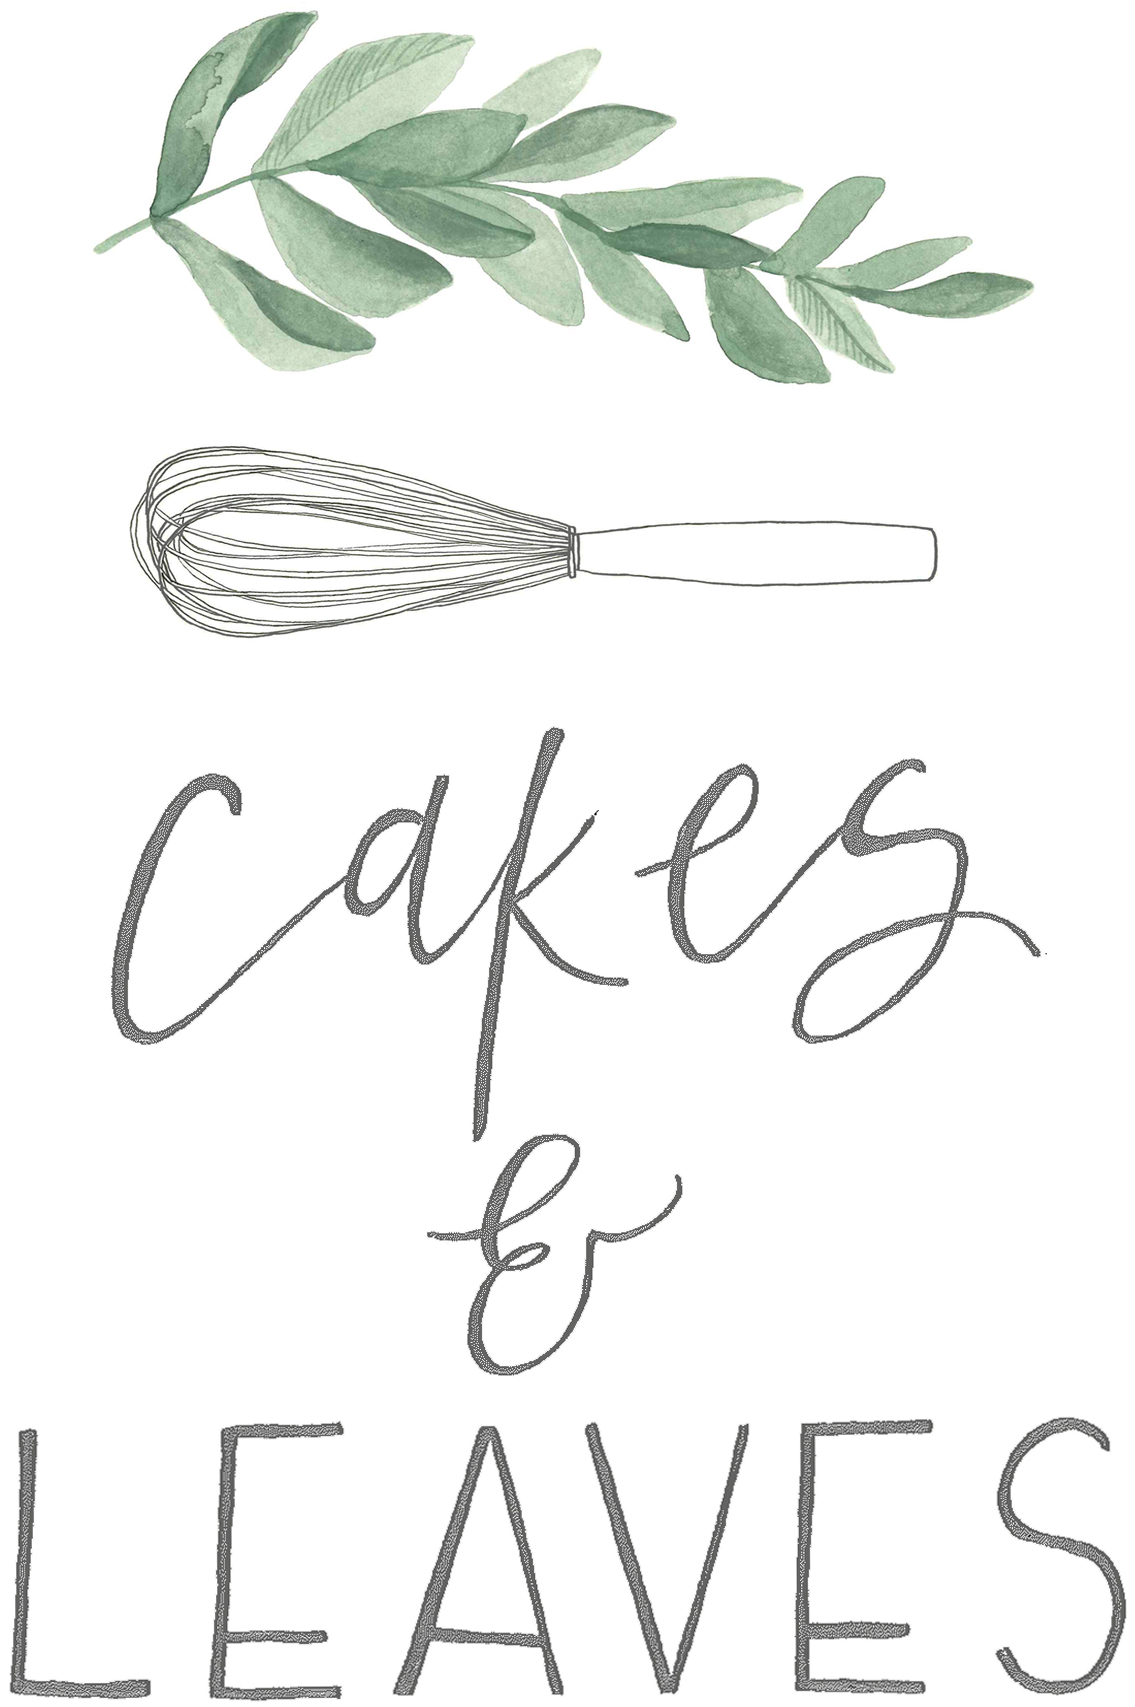 Cakes & leaves | Nature inspired healthy cake art from London